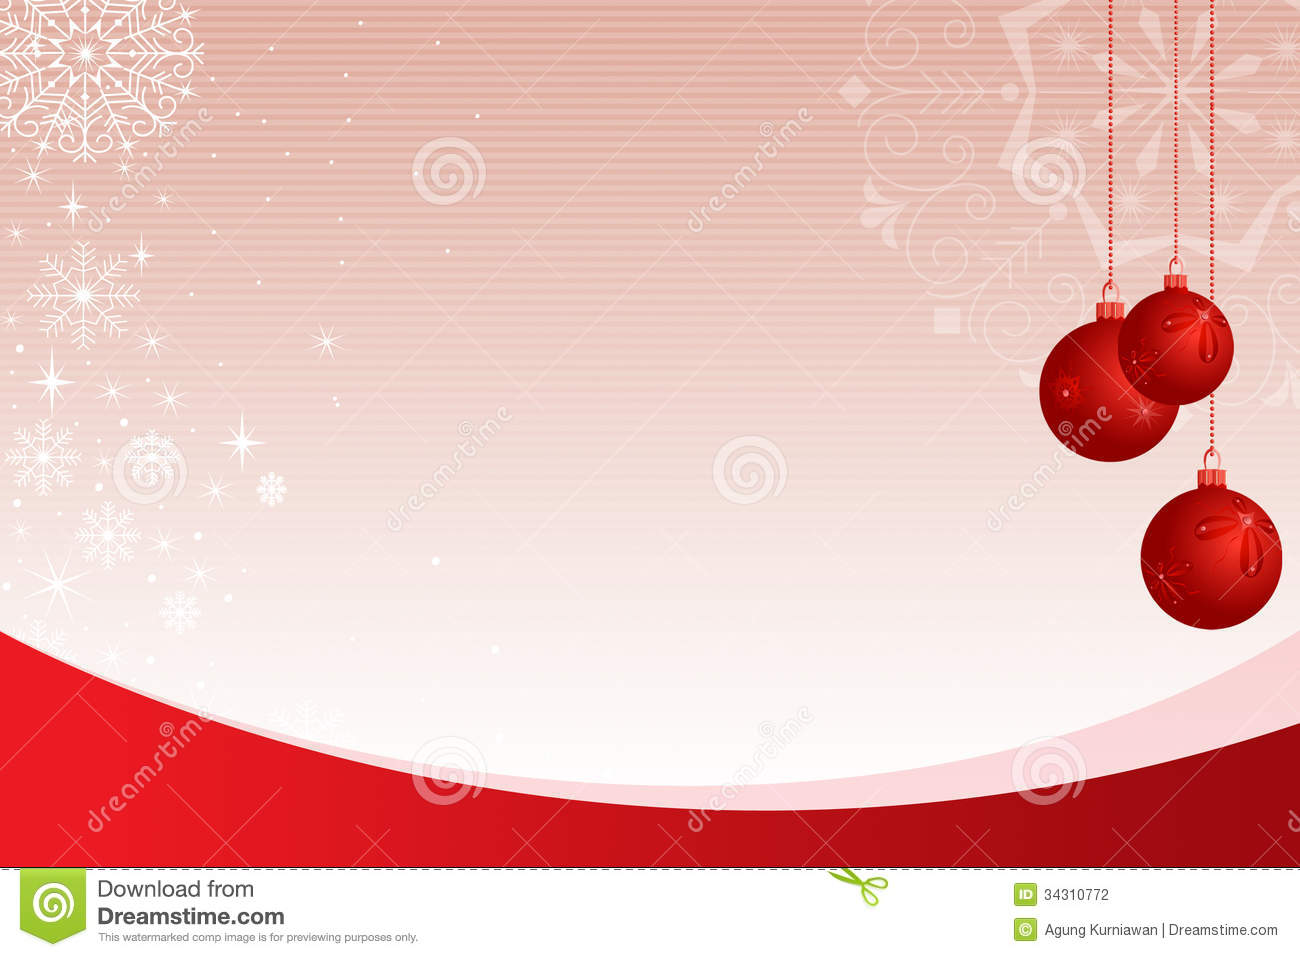 christmas birthday background ; ornamental-background-red-bubble-can-be-used-many-purpose-example-greeting-card-invitation-card-christmas-card-birthday-34310772